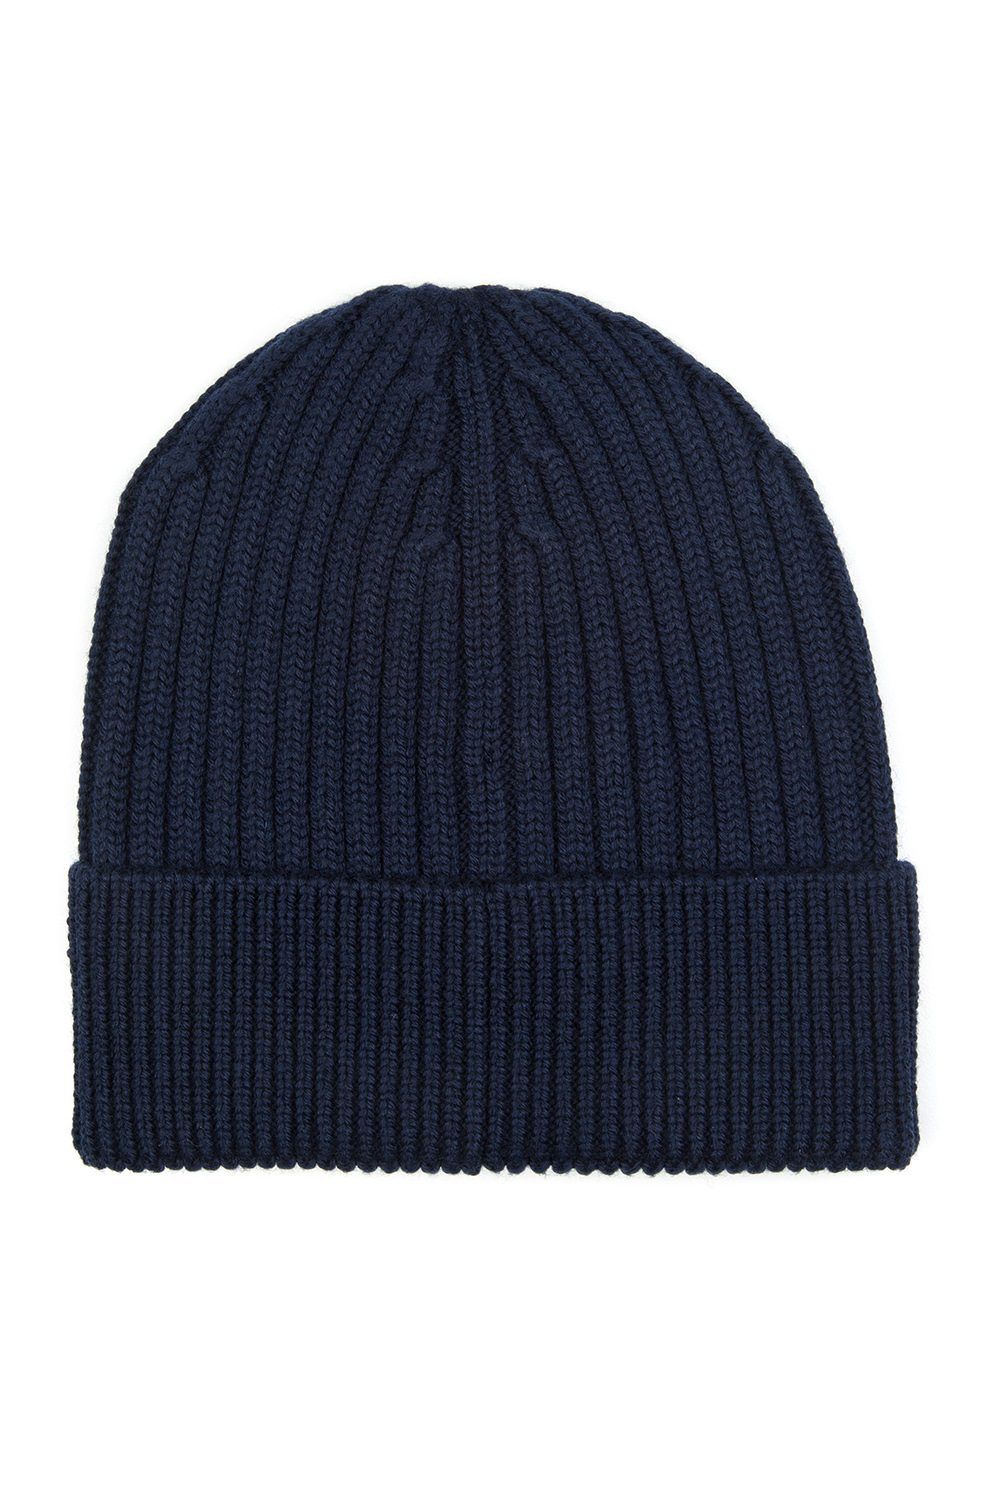 12de44d5510 Moncler Grenoble Men s Ribbed Beanie Hat Navy - Linea Fashion